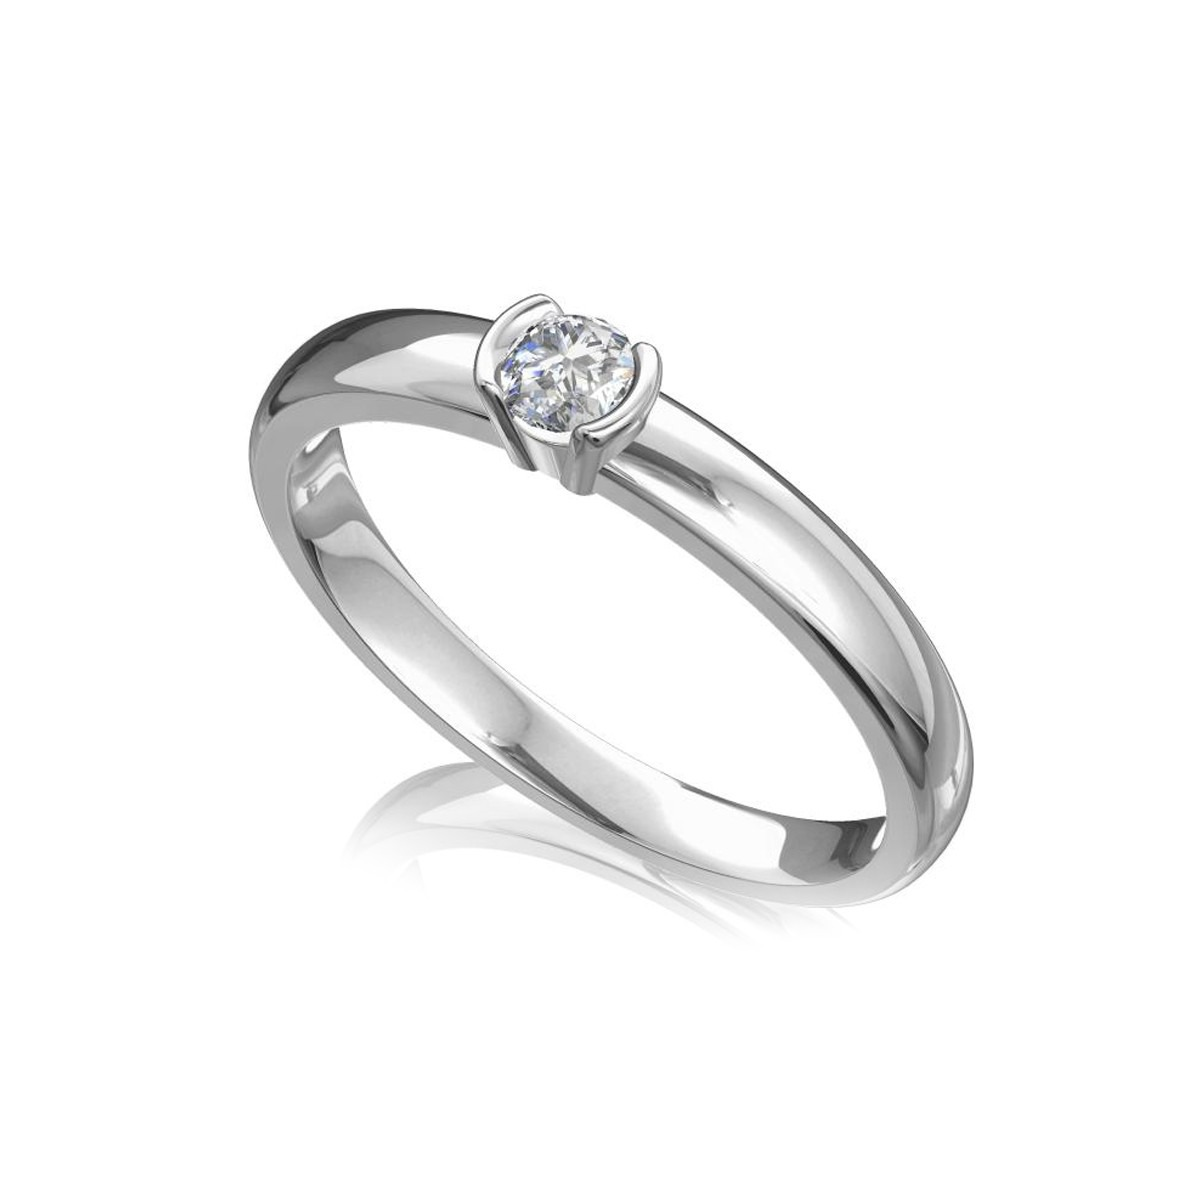 Classic engagement ring for her.